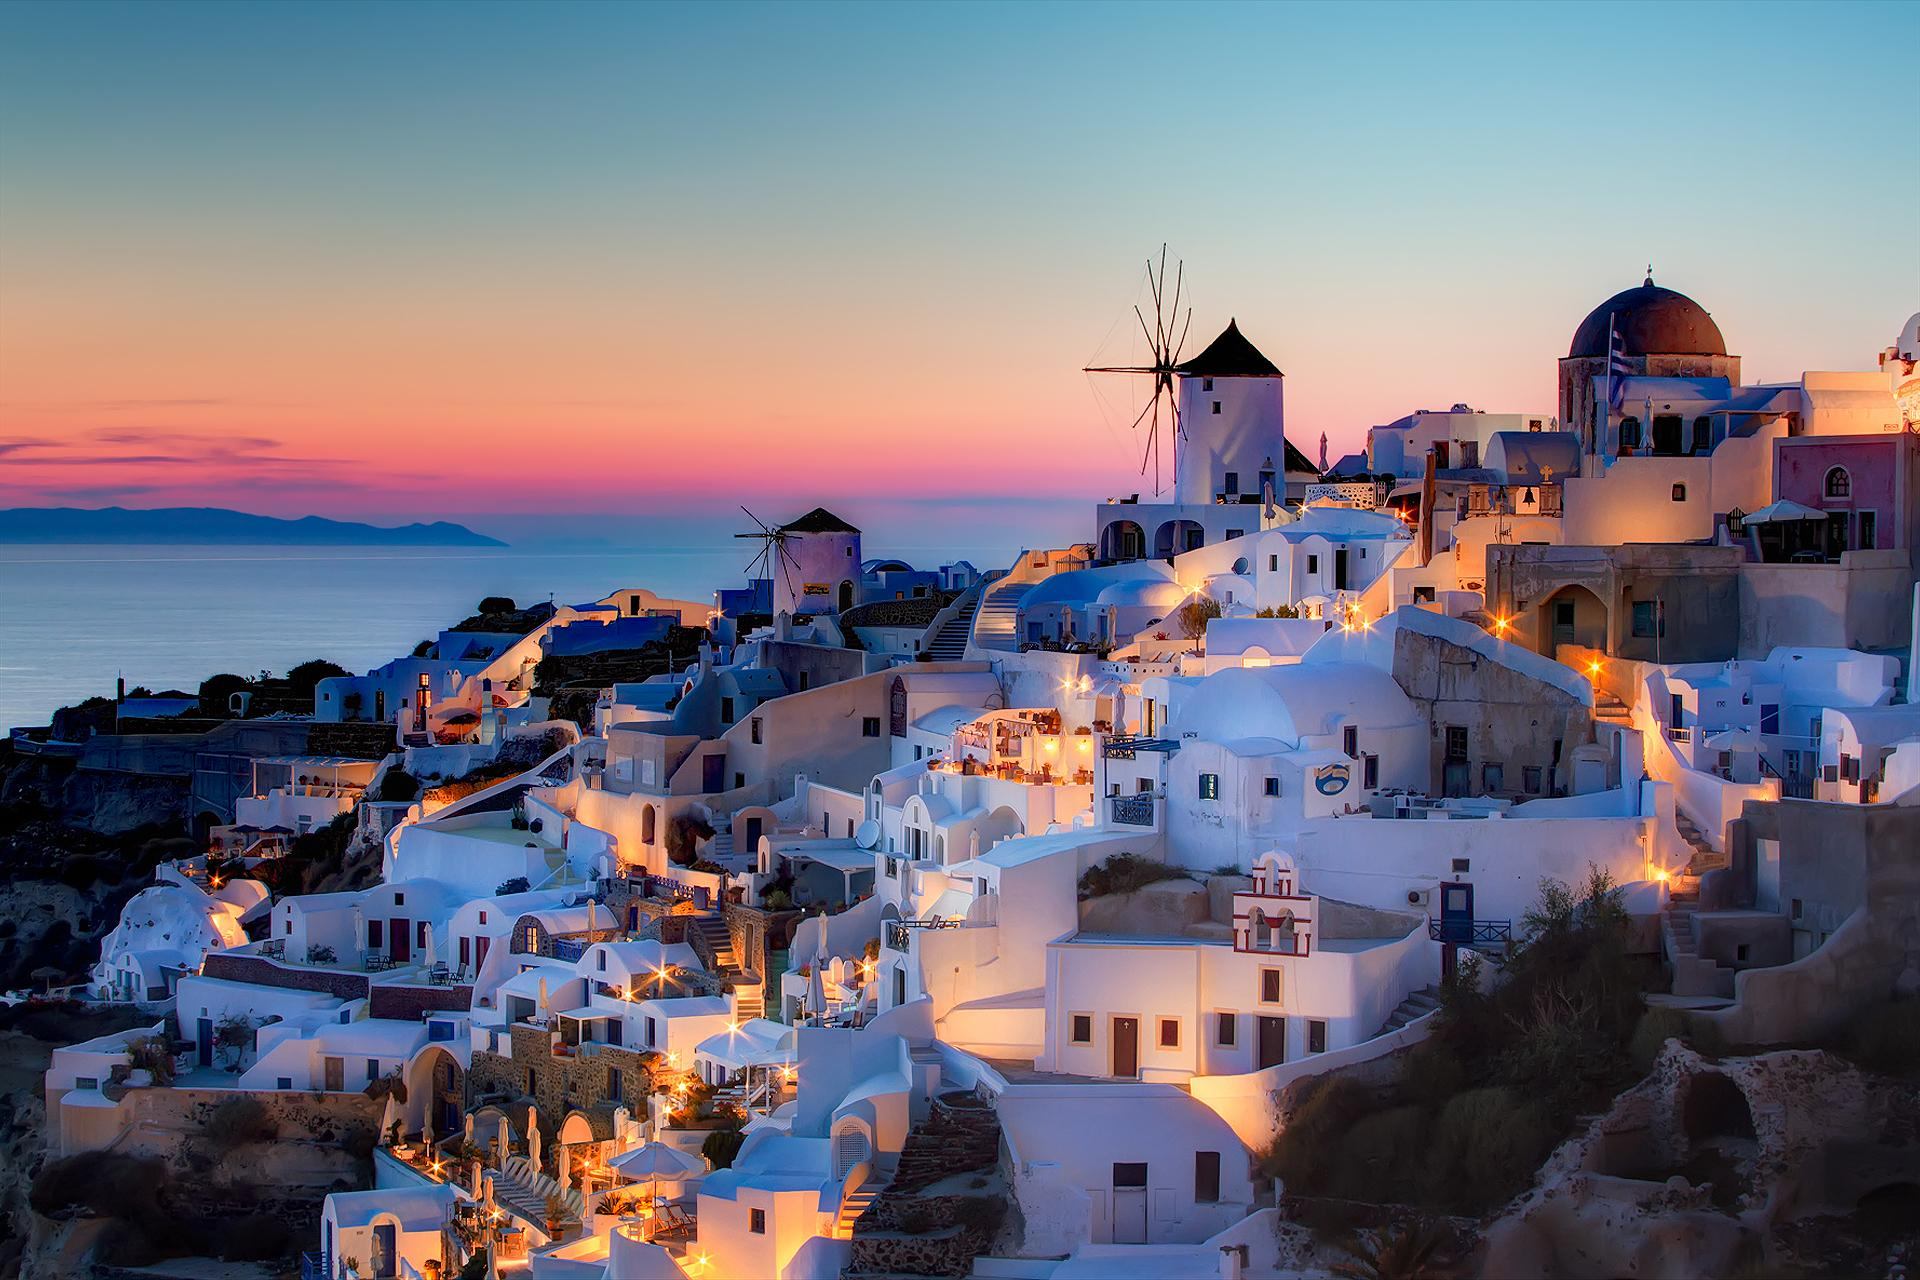 Antorini in Greece is the most romantic getaway of Greece